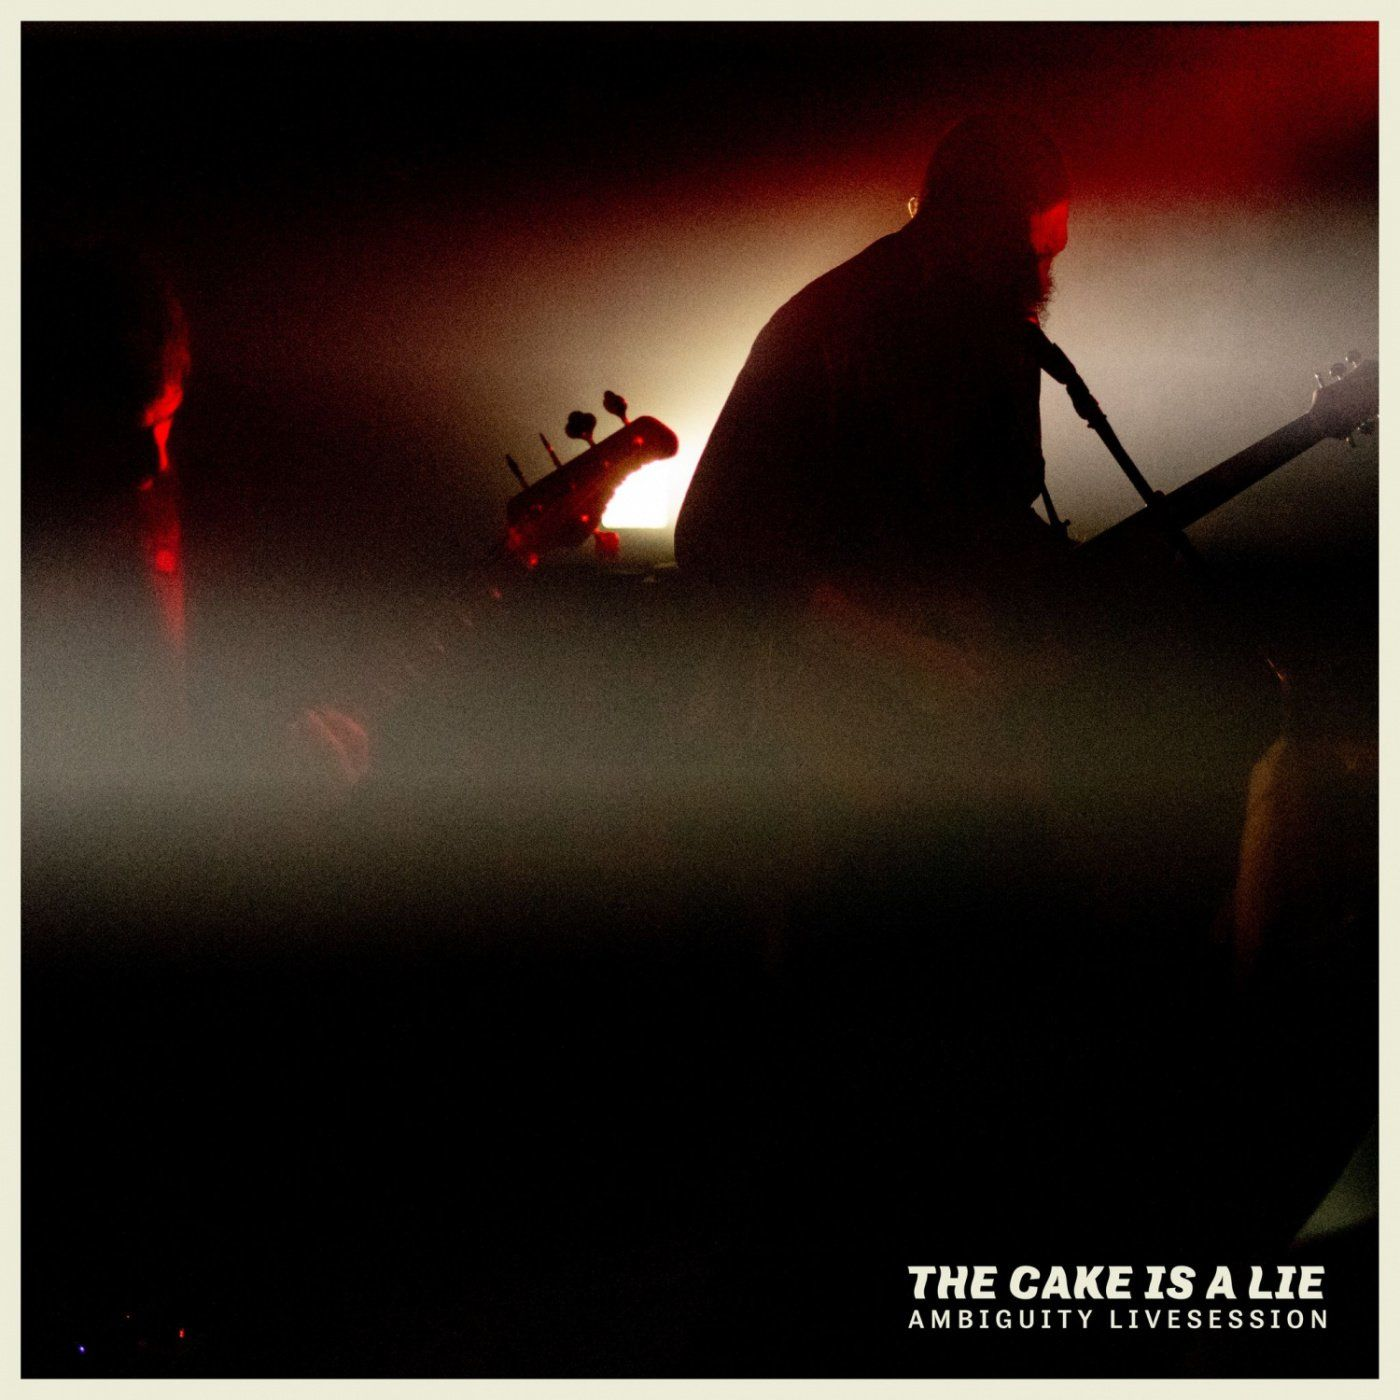 The Cake Is A Lie - Ambiguity [Live Session] (2020)